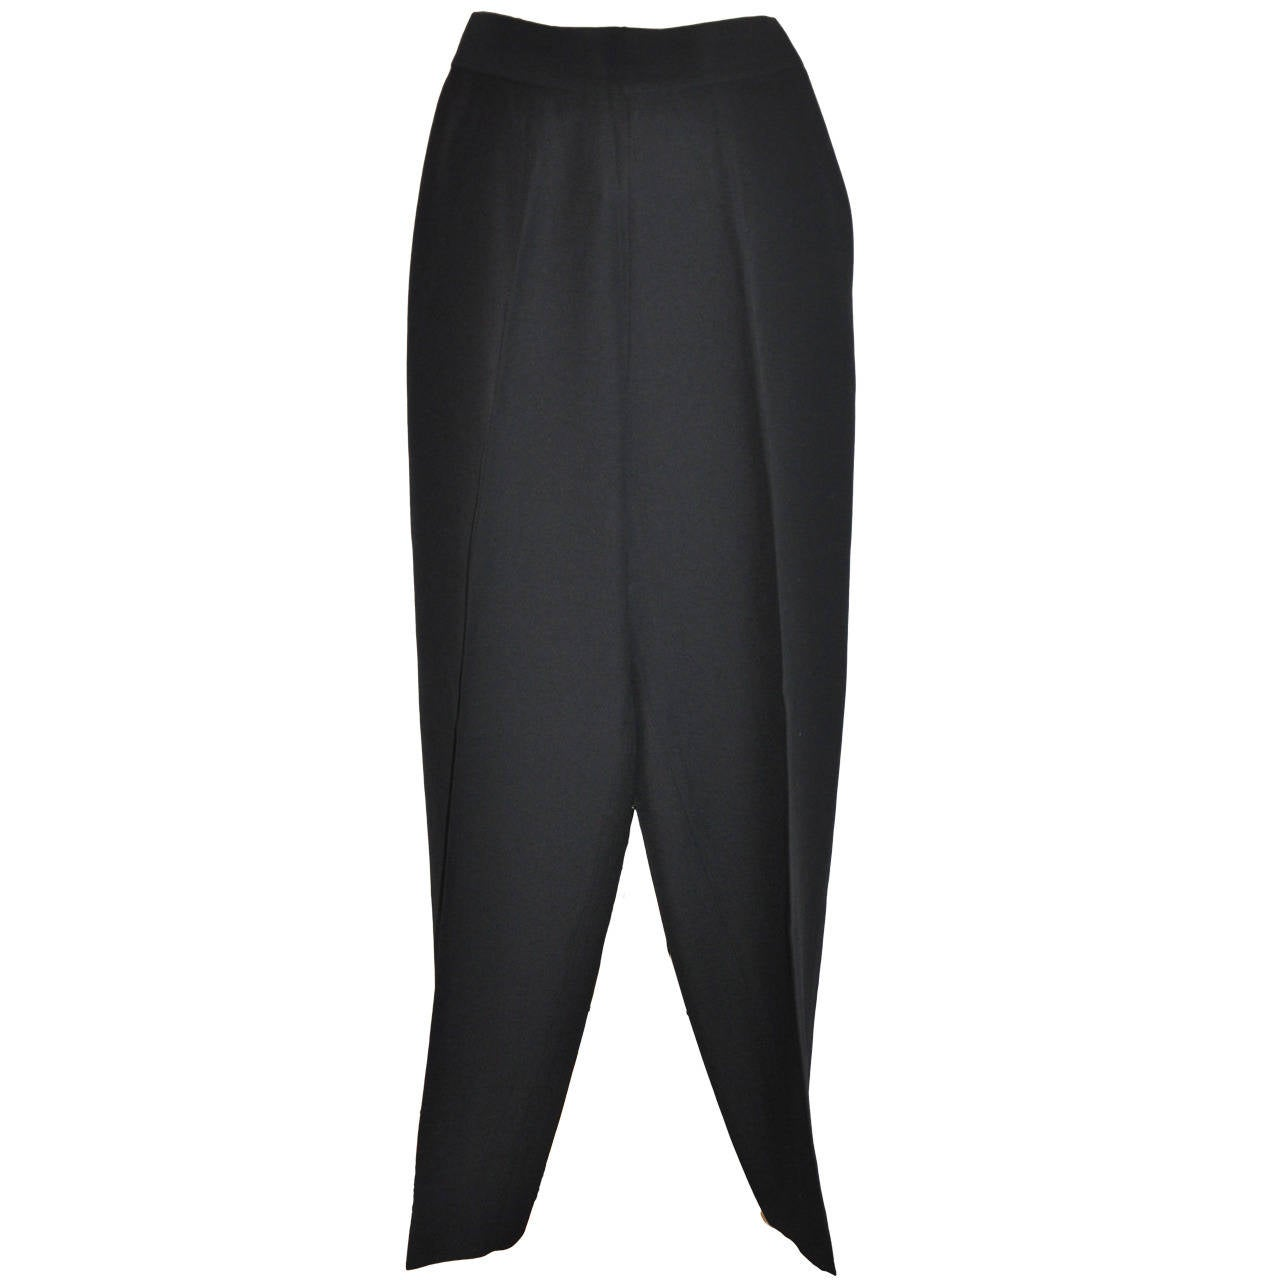 Moschino Black Slim Trouser